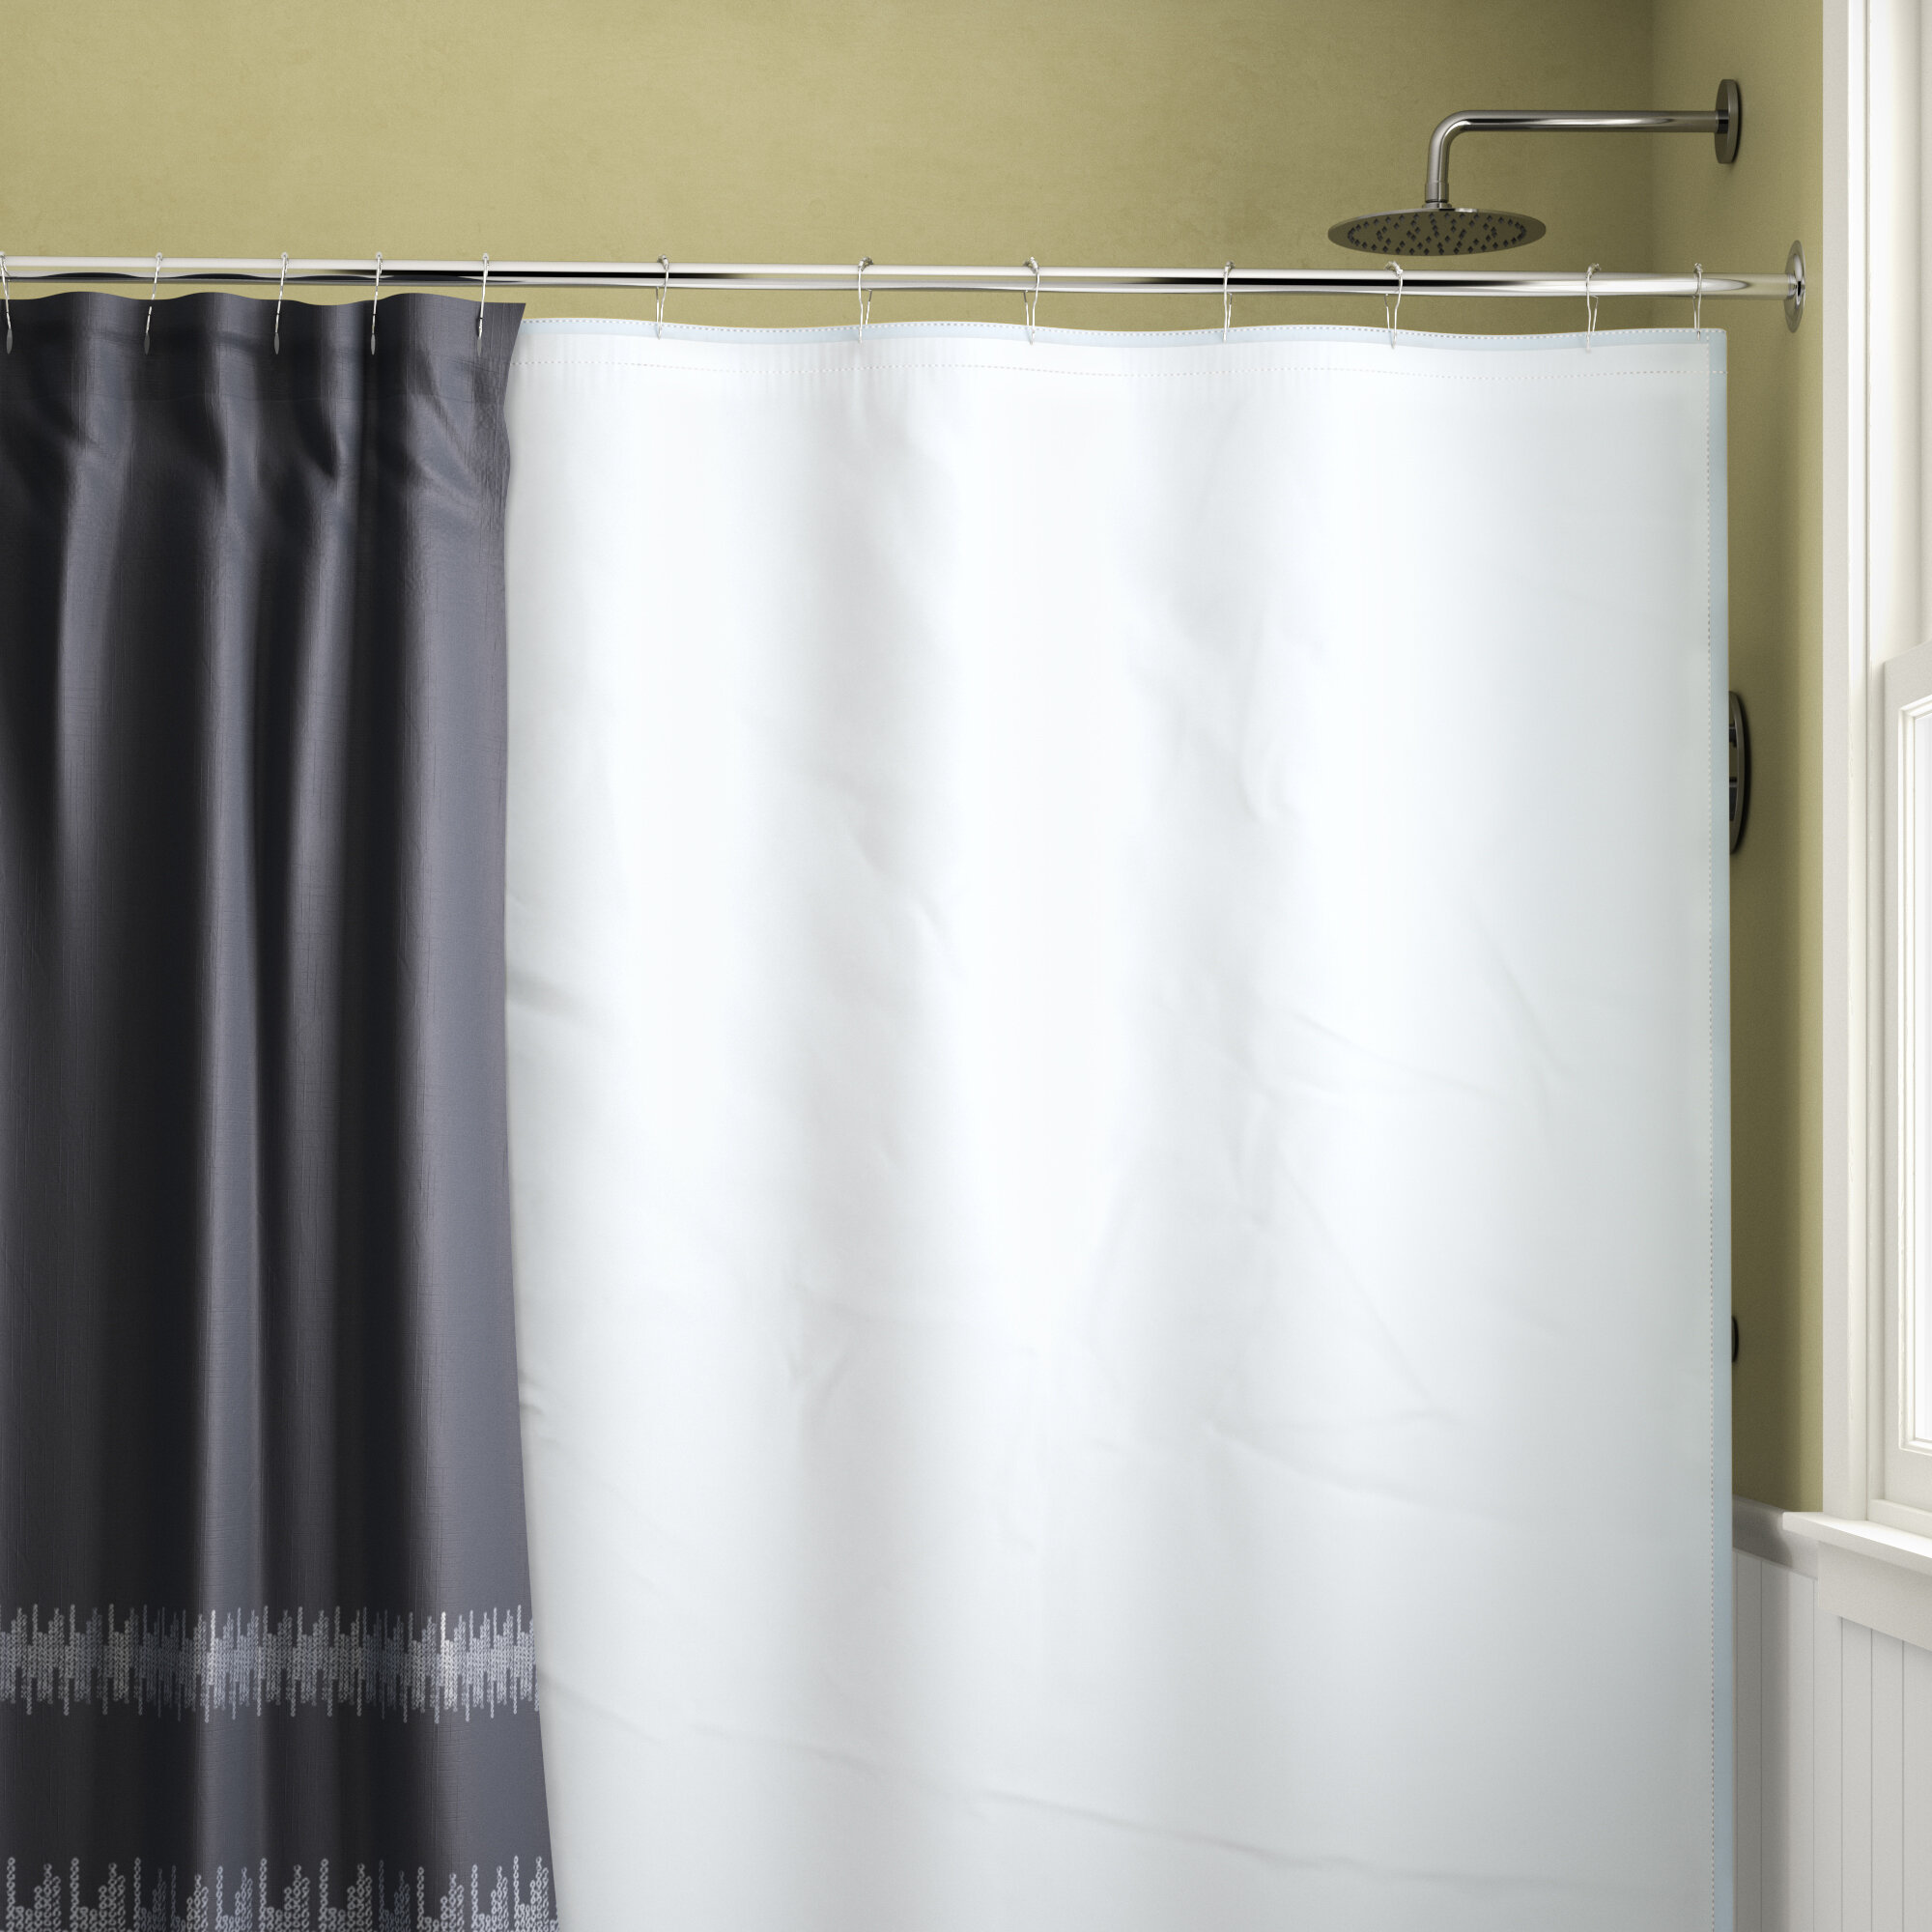 Symple Stuff Waterproof Shower Curtain Liner Reviews